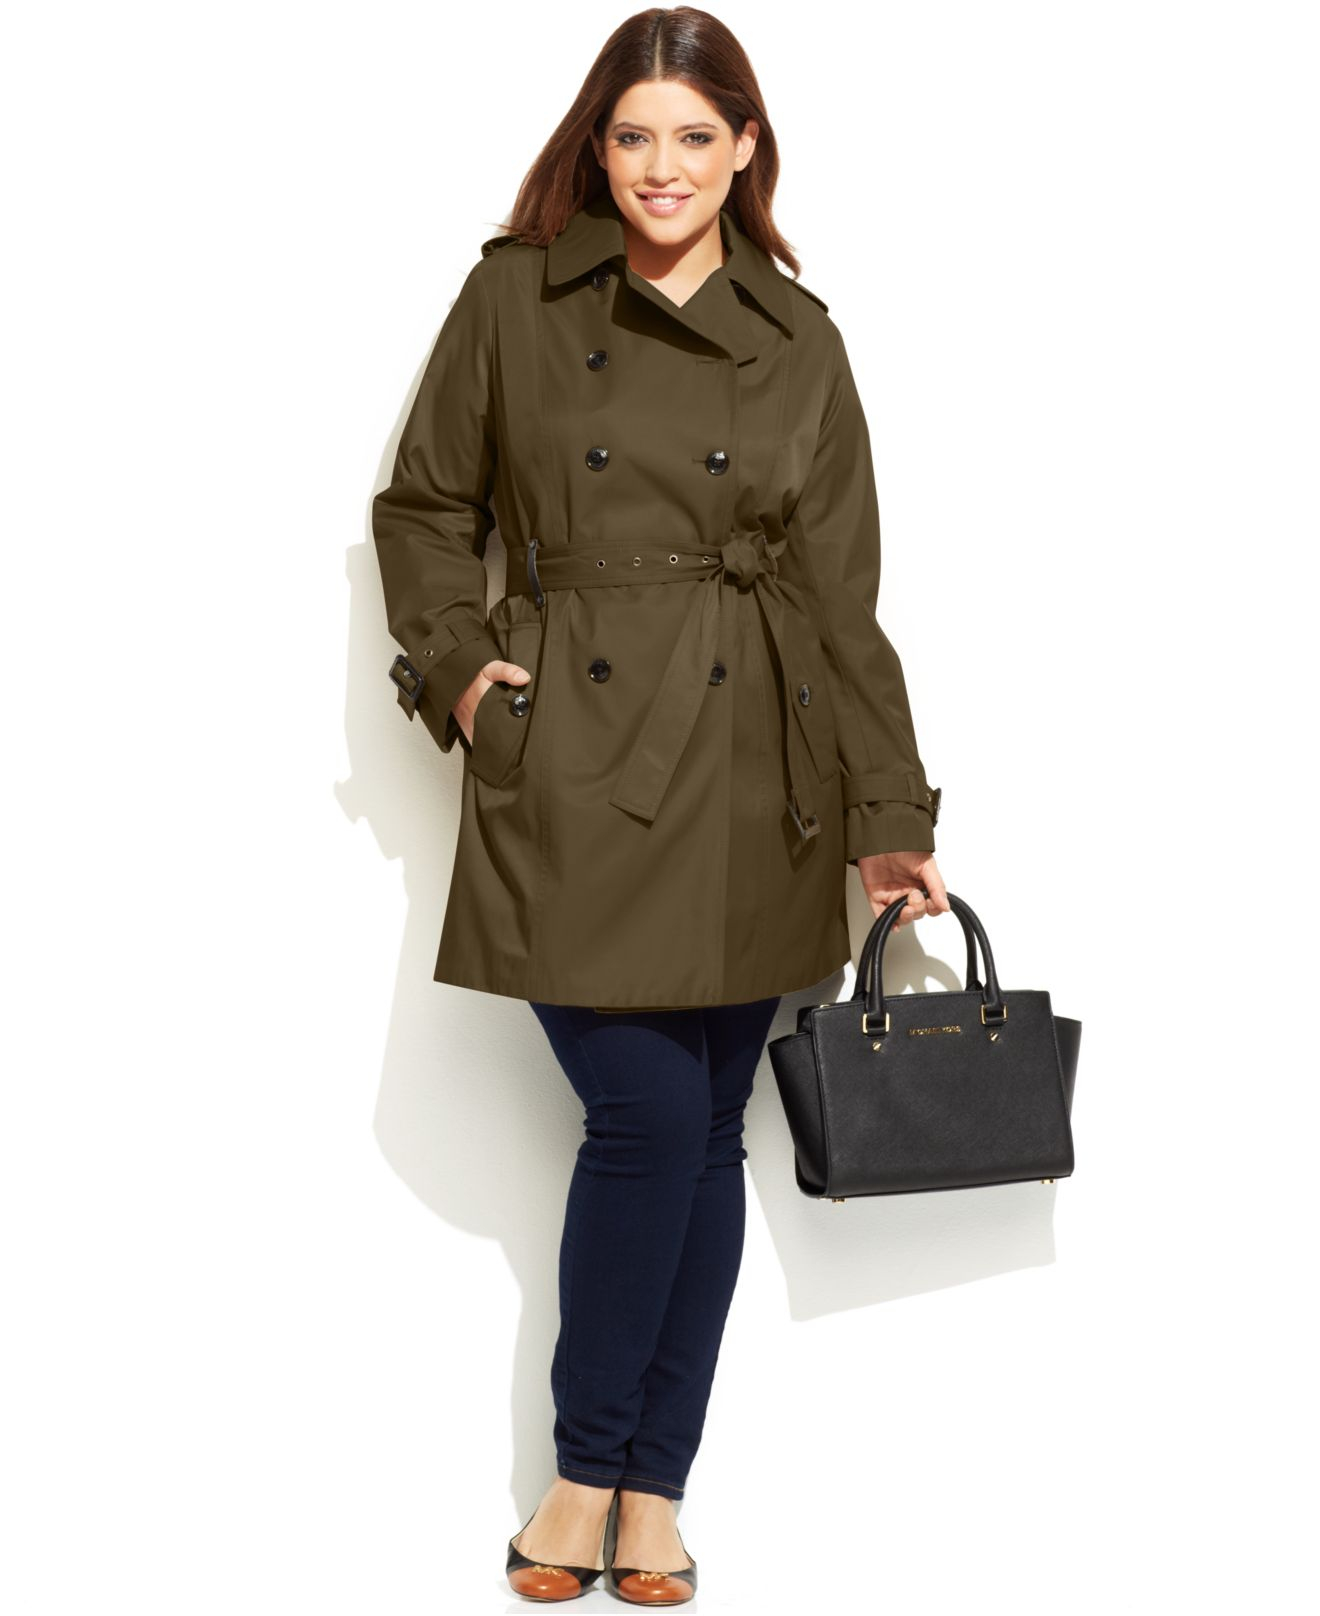 London Fog Plus Size Hooded Trench Coat - Black 0X. London Fog has you covered in this plus size trench coat, a single-breasted design with a weather-ready hood and water resistant finish.